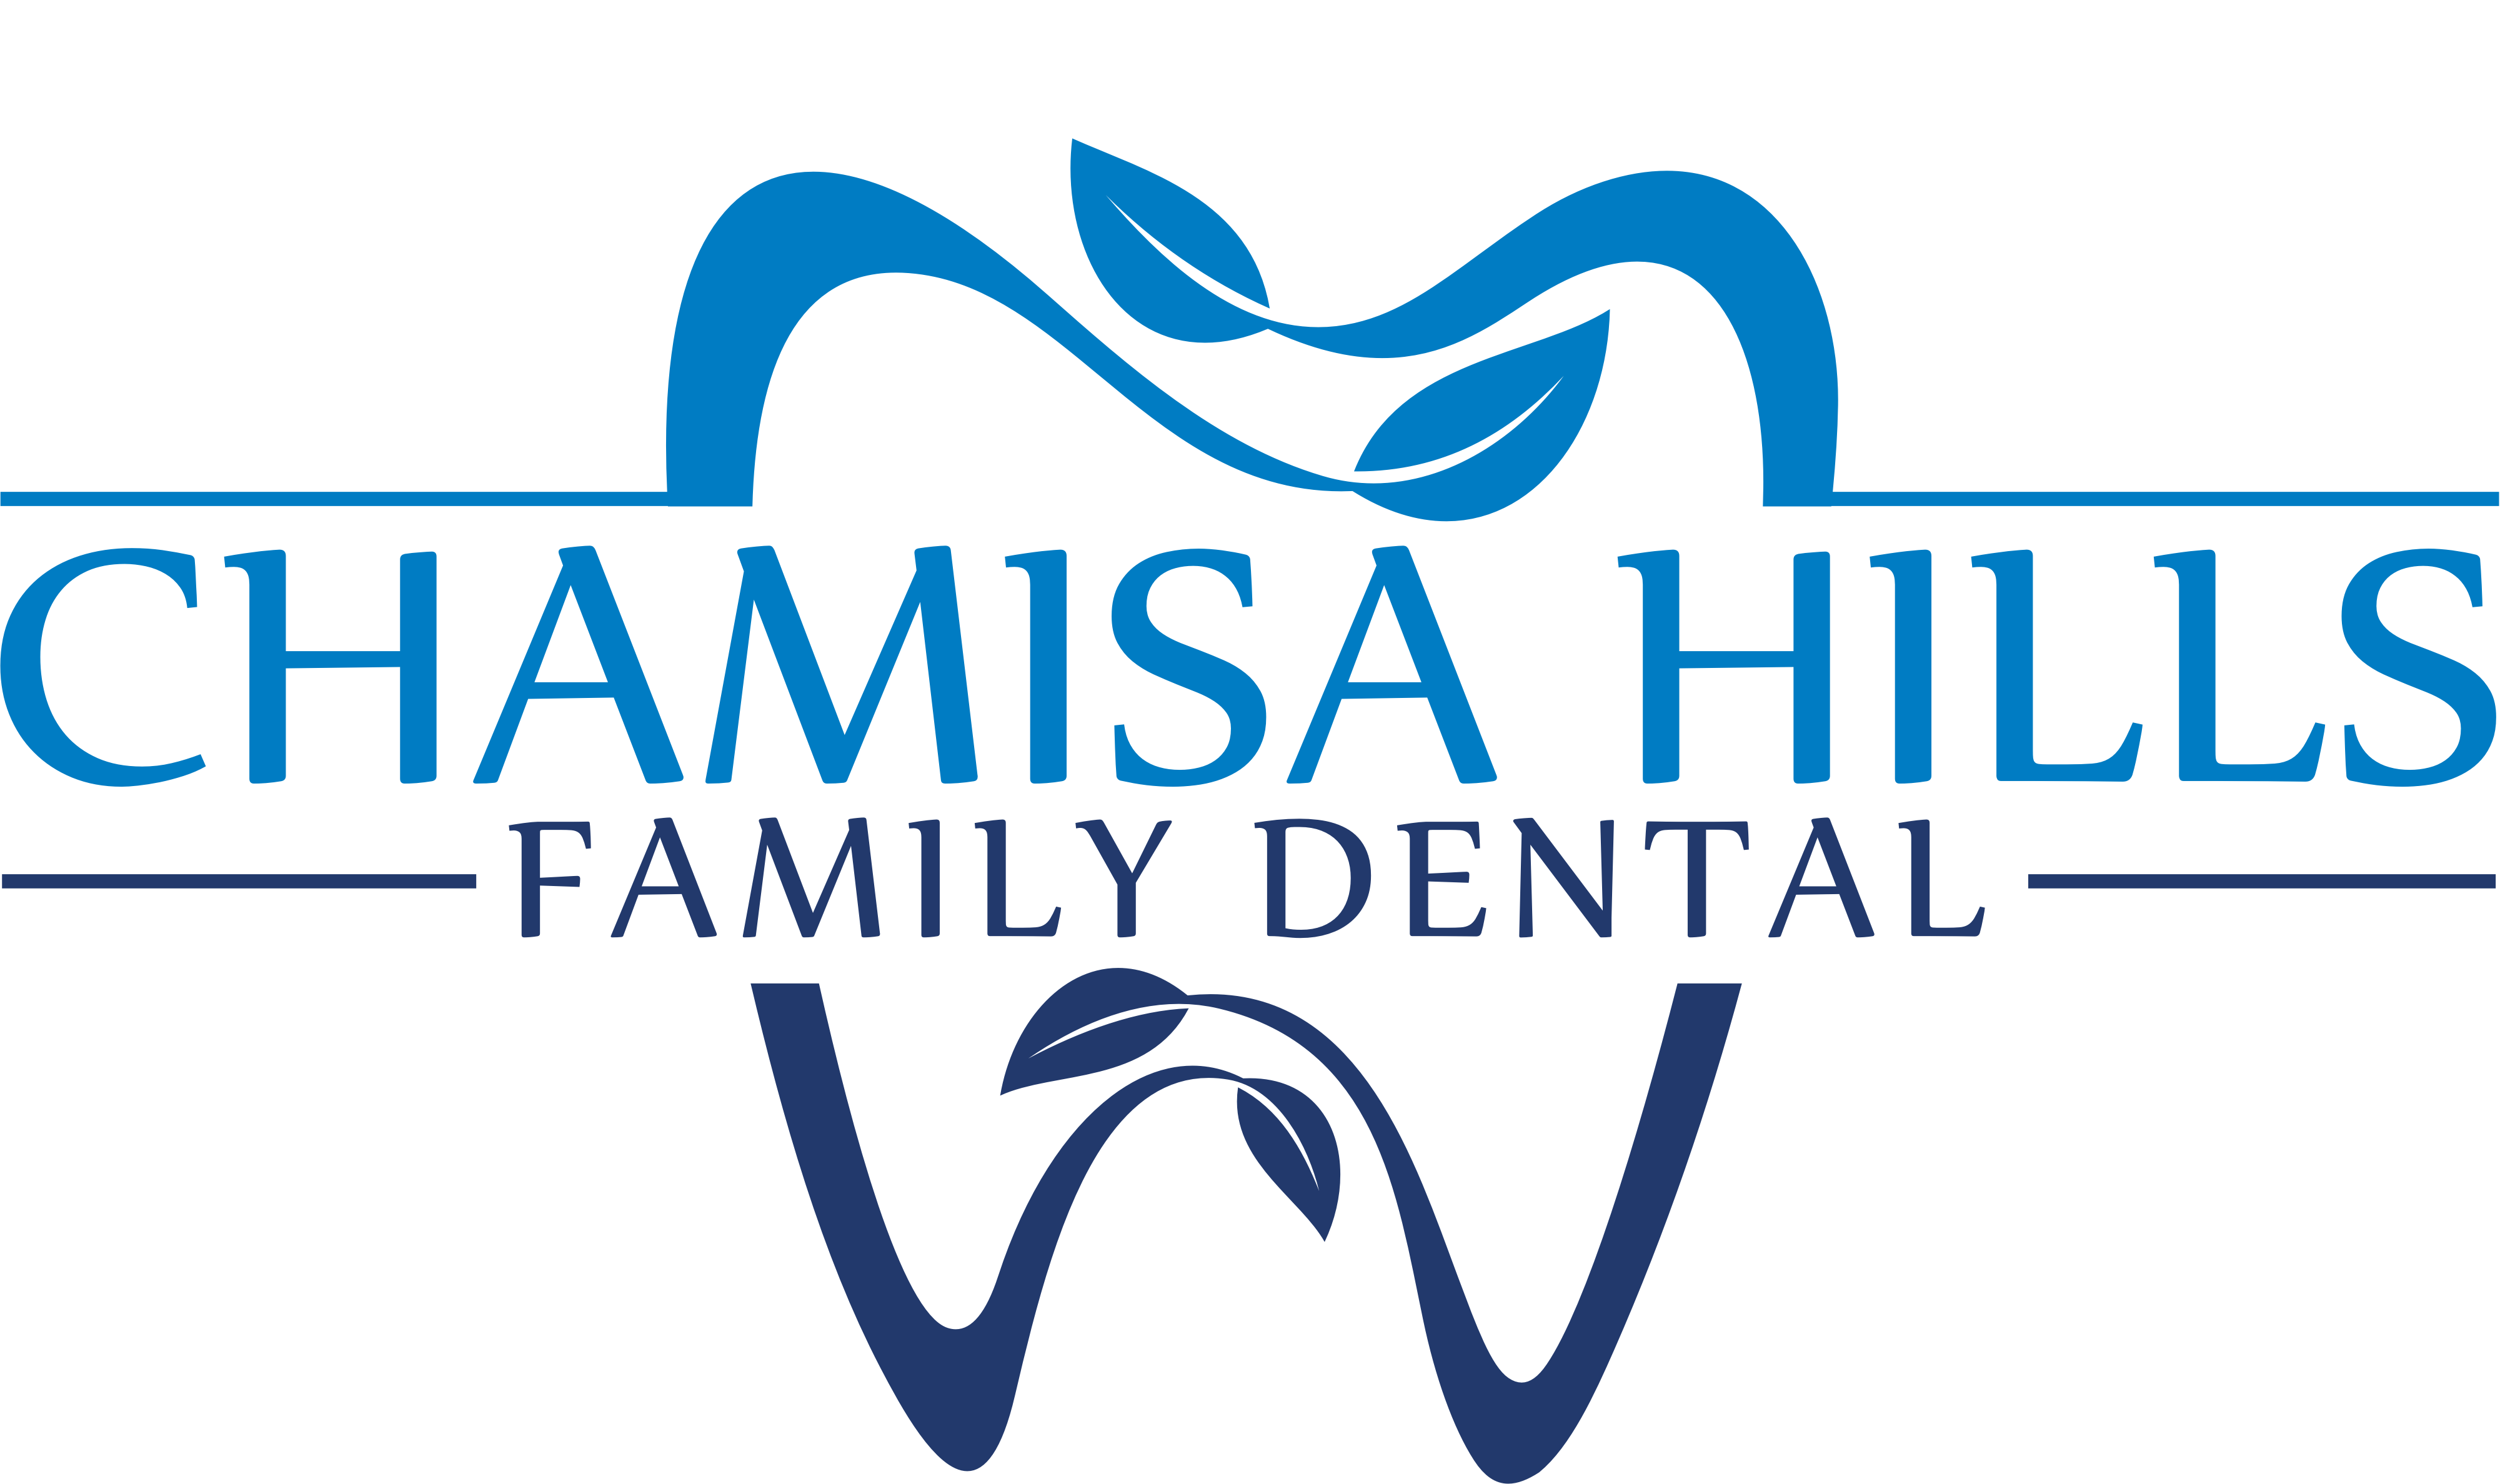 Chamisa Hills Family Dental